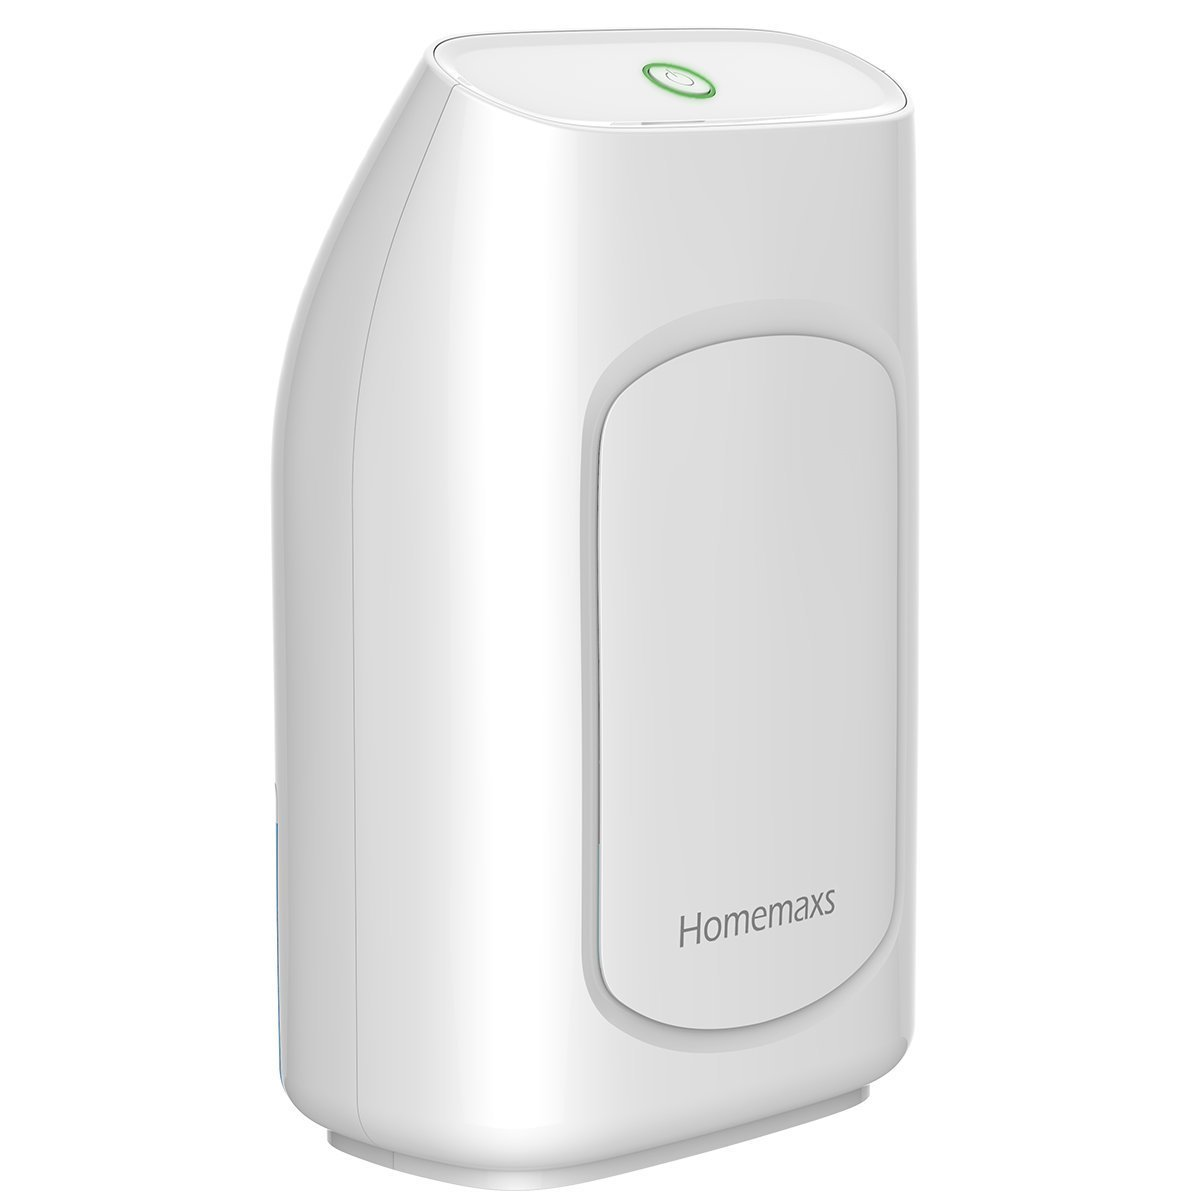 HOMEMAXS Dehumidifier, 700ml Portable Dehumidifier, Super Quiet Air Electric Dehumidifier with Auto Shut Off Function for Bedroom Bathroom Office Closet Wardrobe Basement Office (up to 220 sq ft)